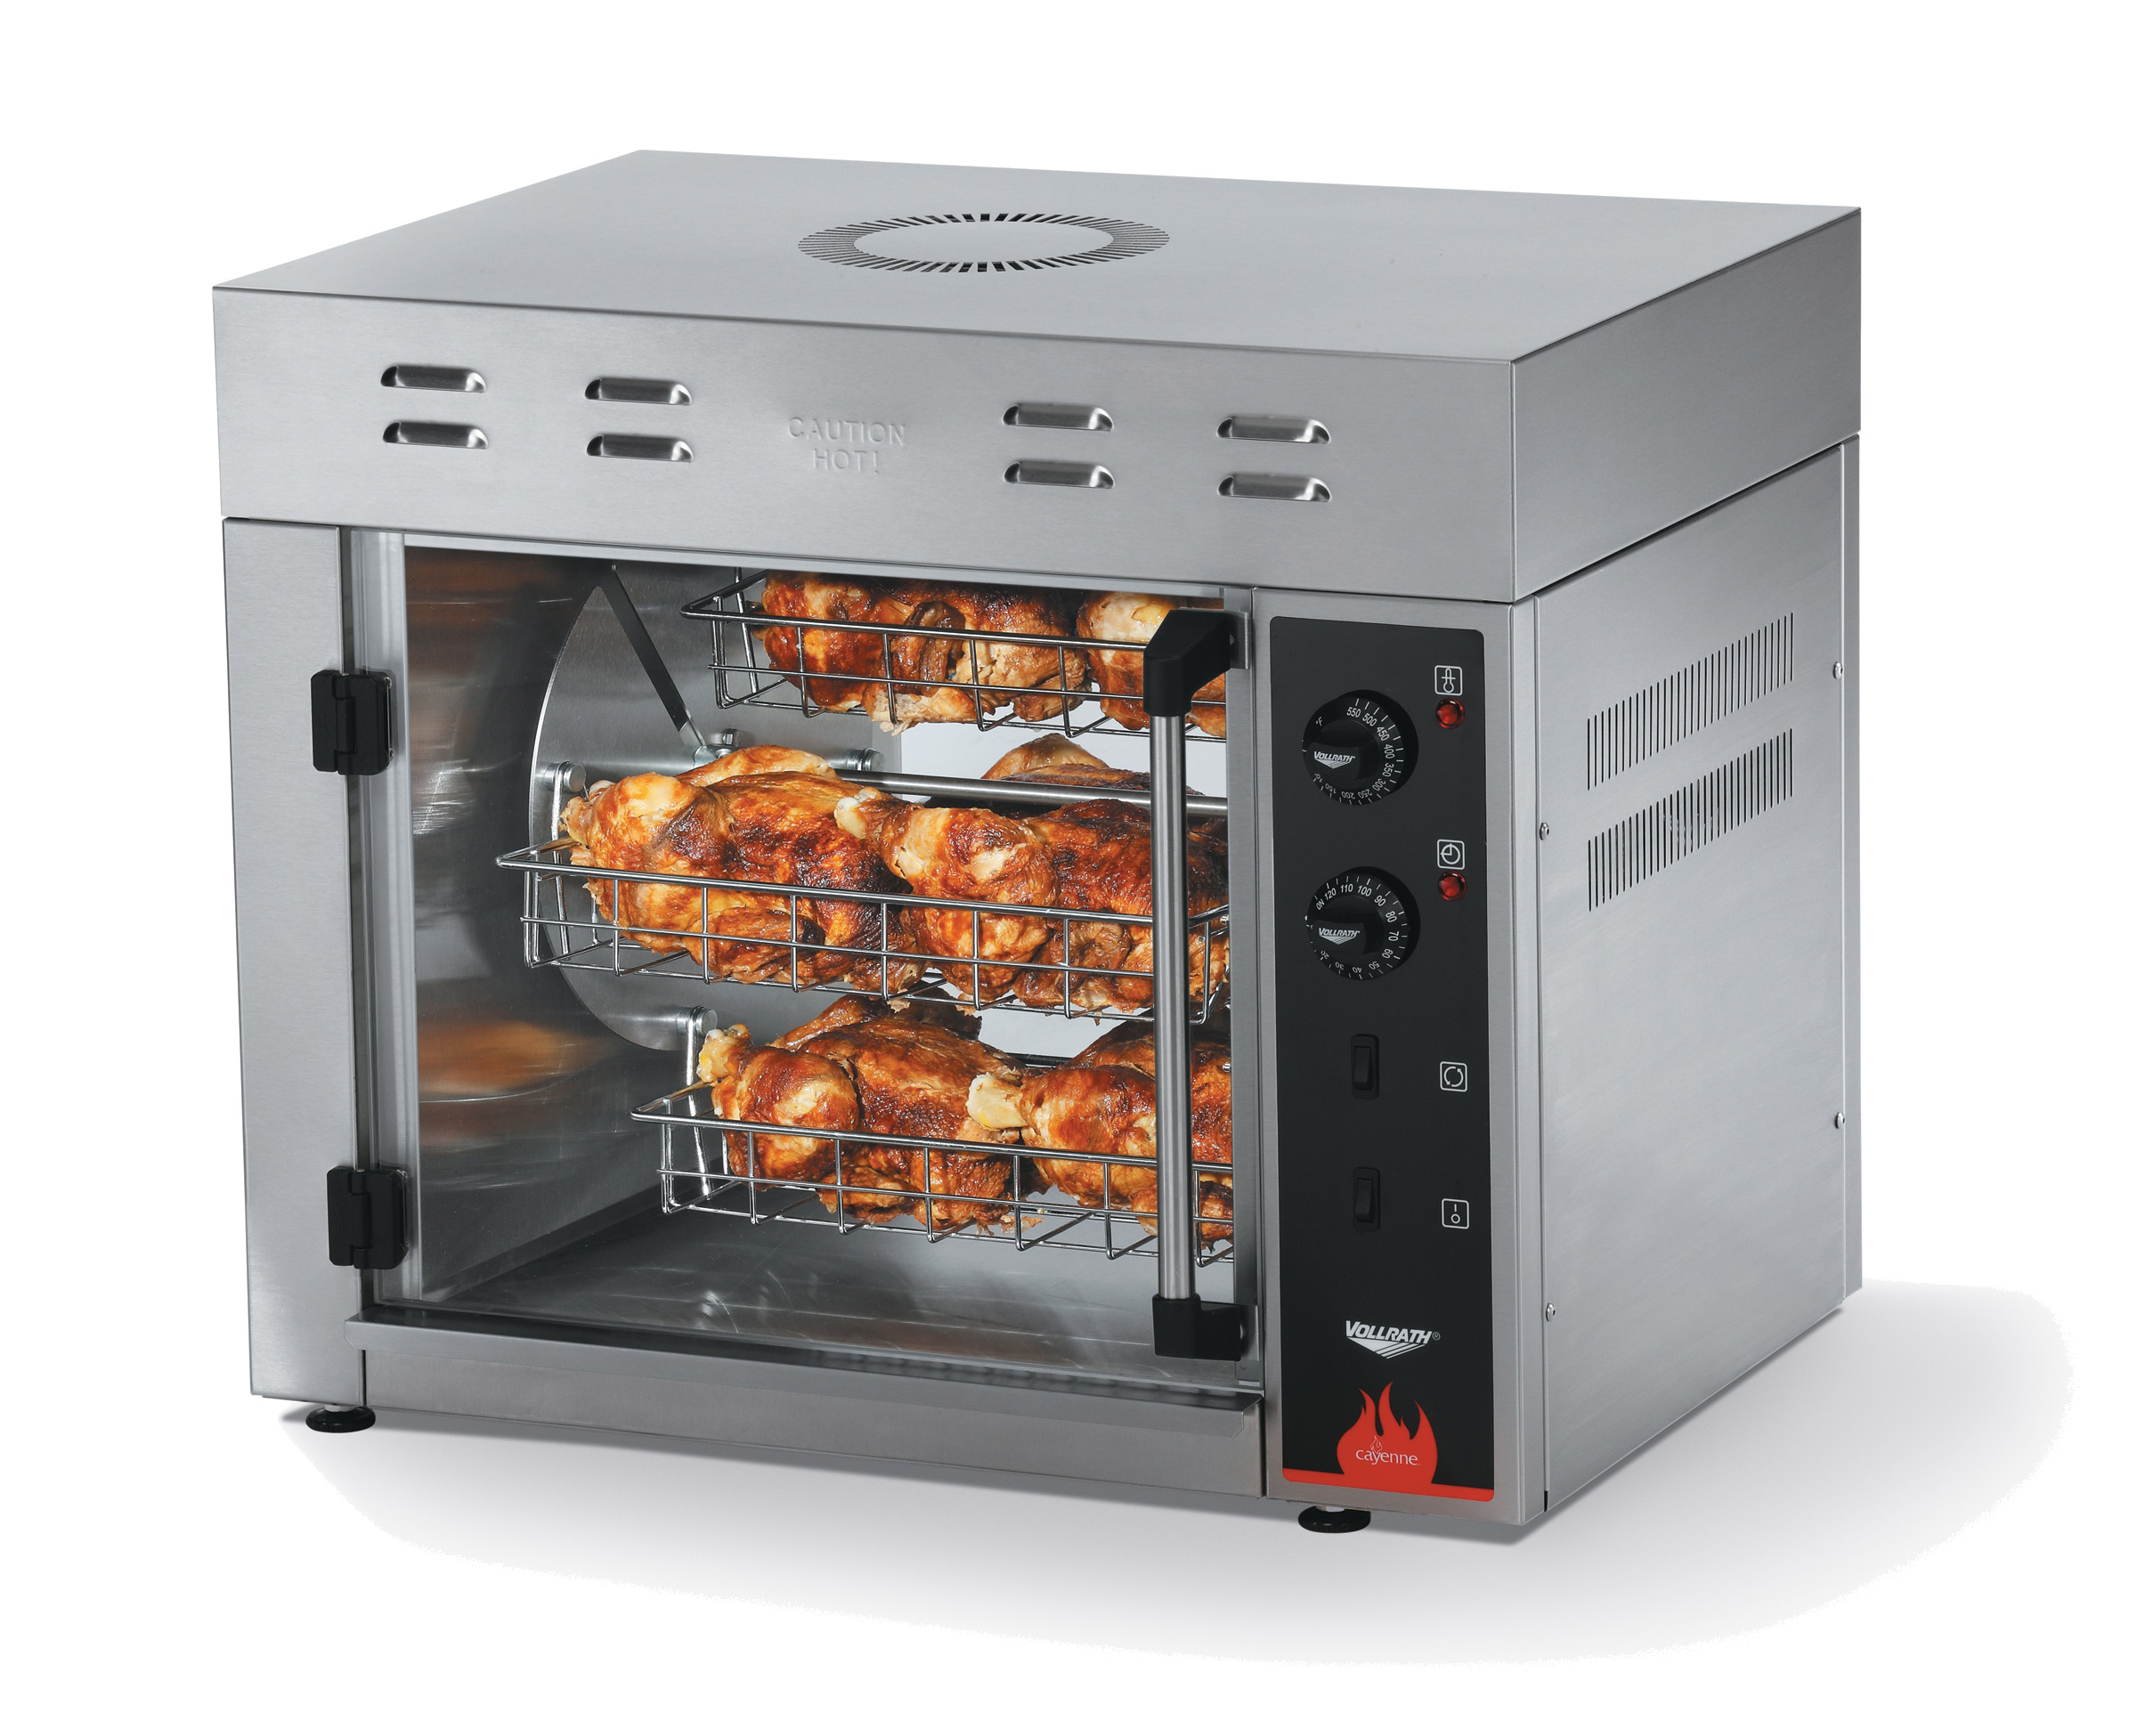 Vollrath 40704 oven, electric, rotisserie